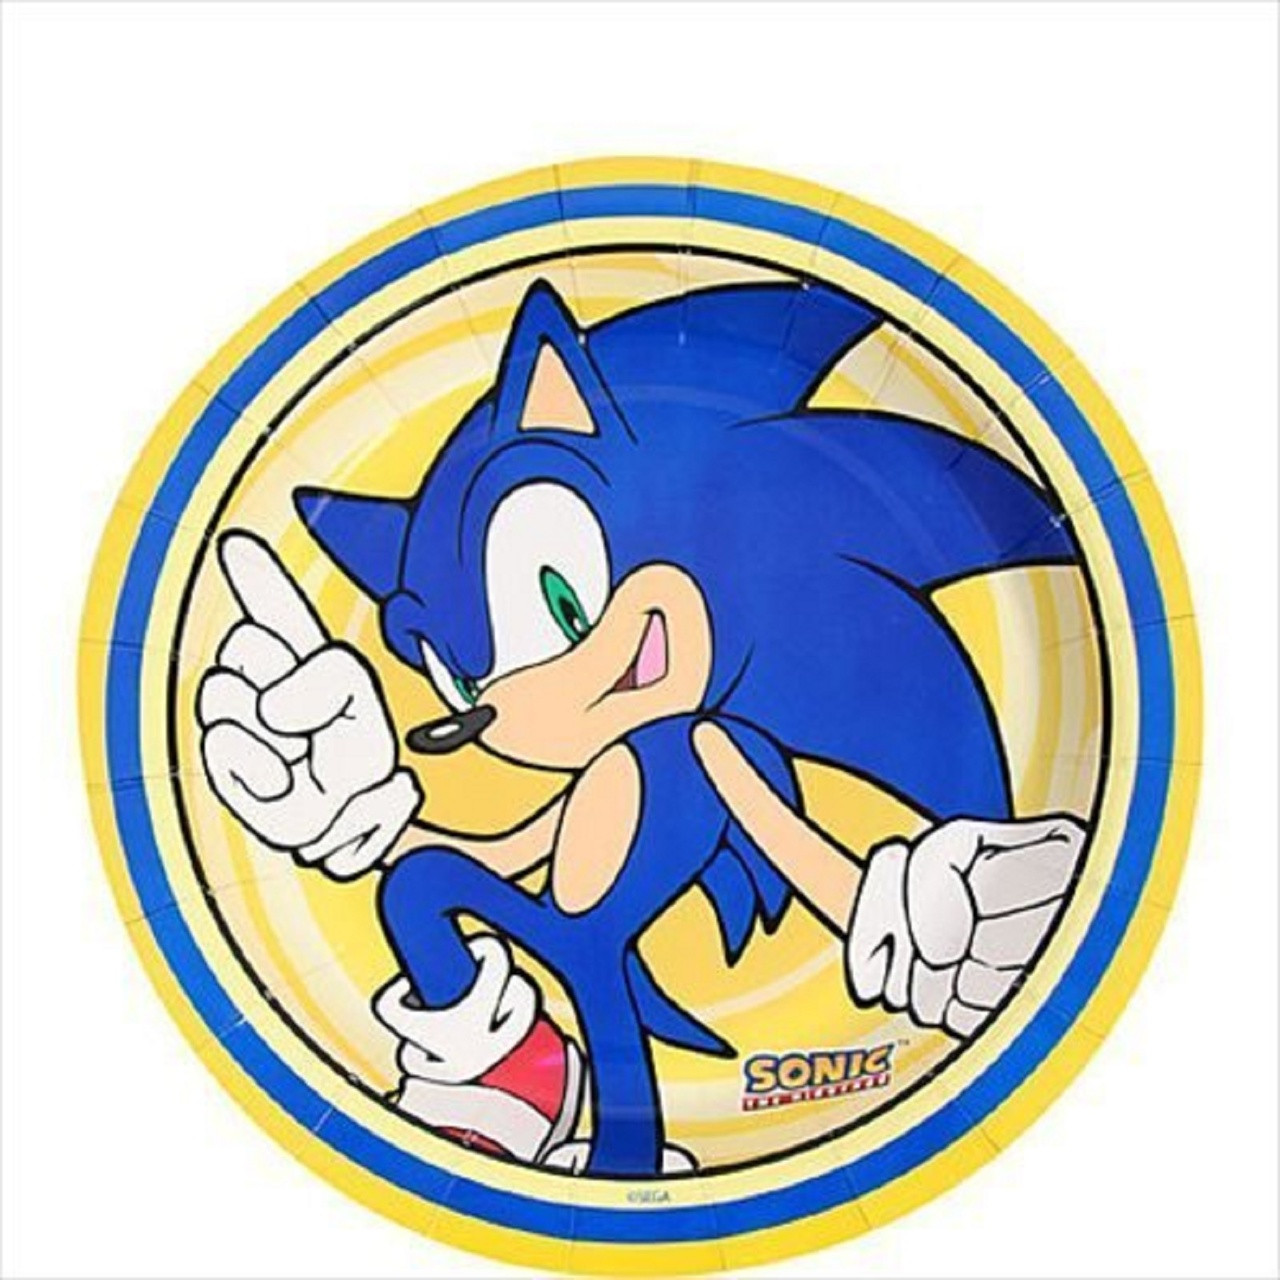 Sonic The Hedgehog 7 Inch Party Cake Plates Party Birthday Dessert